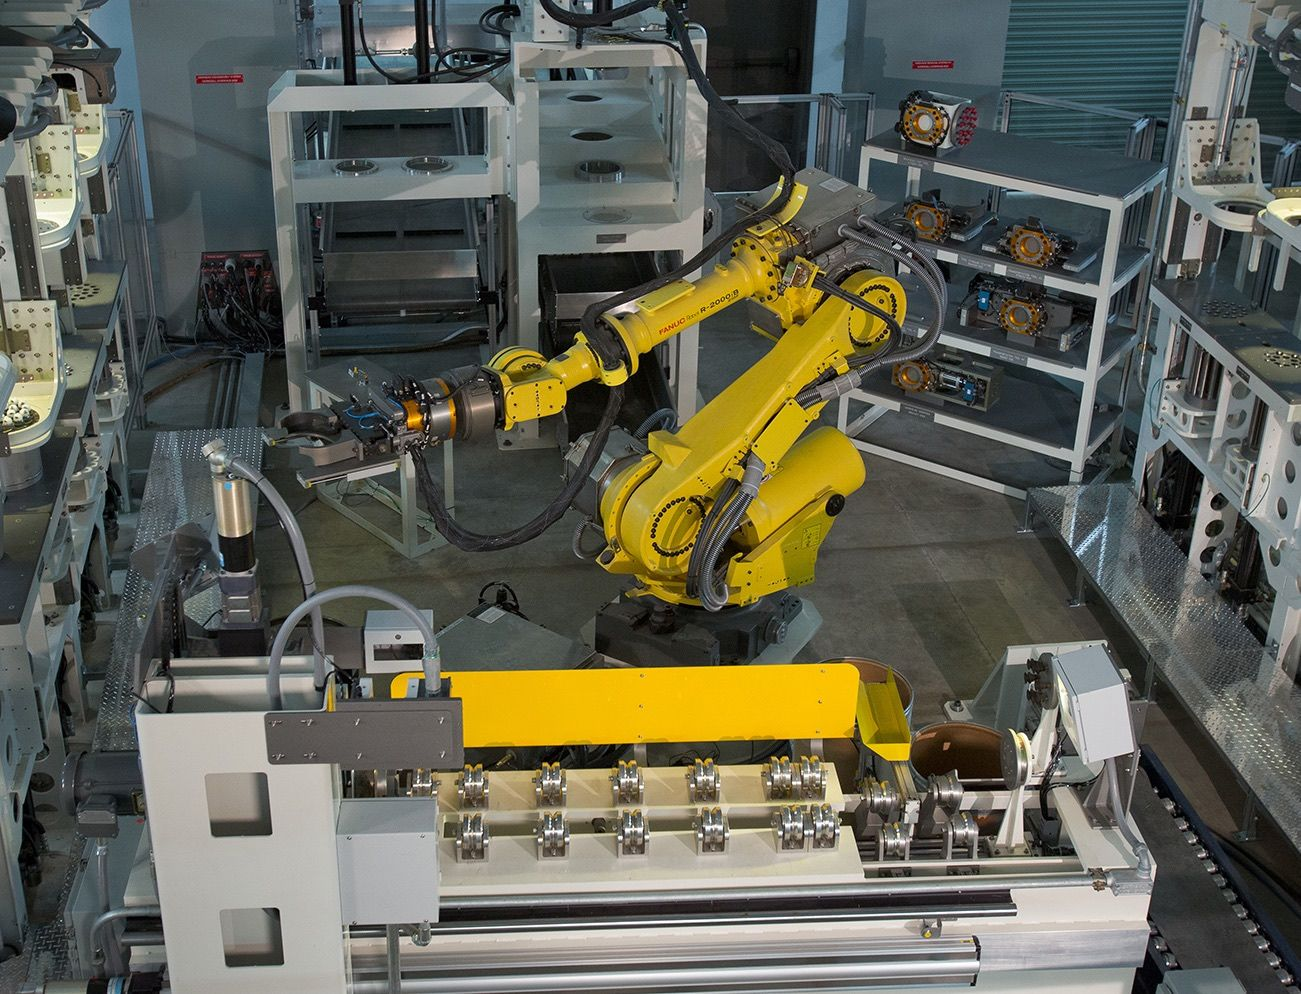 Sandia National Laboratories scientists built and programmed an automated robotic system to recycle weapons for the Army.